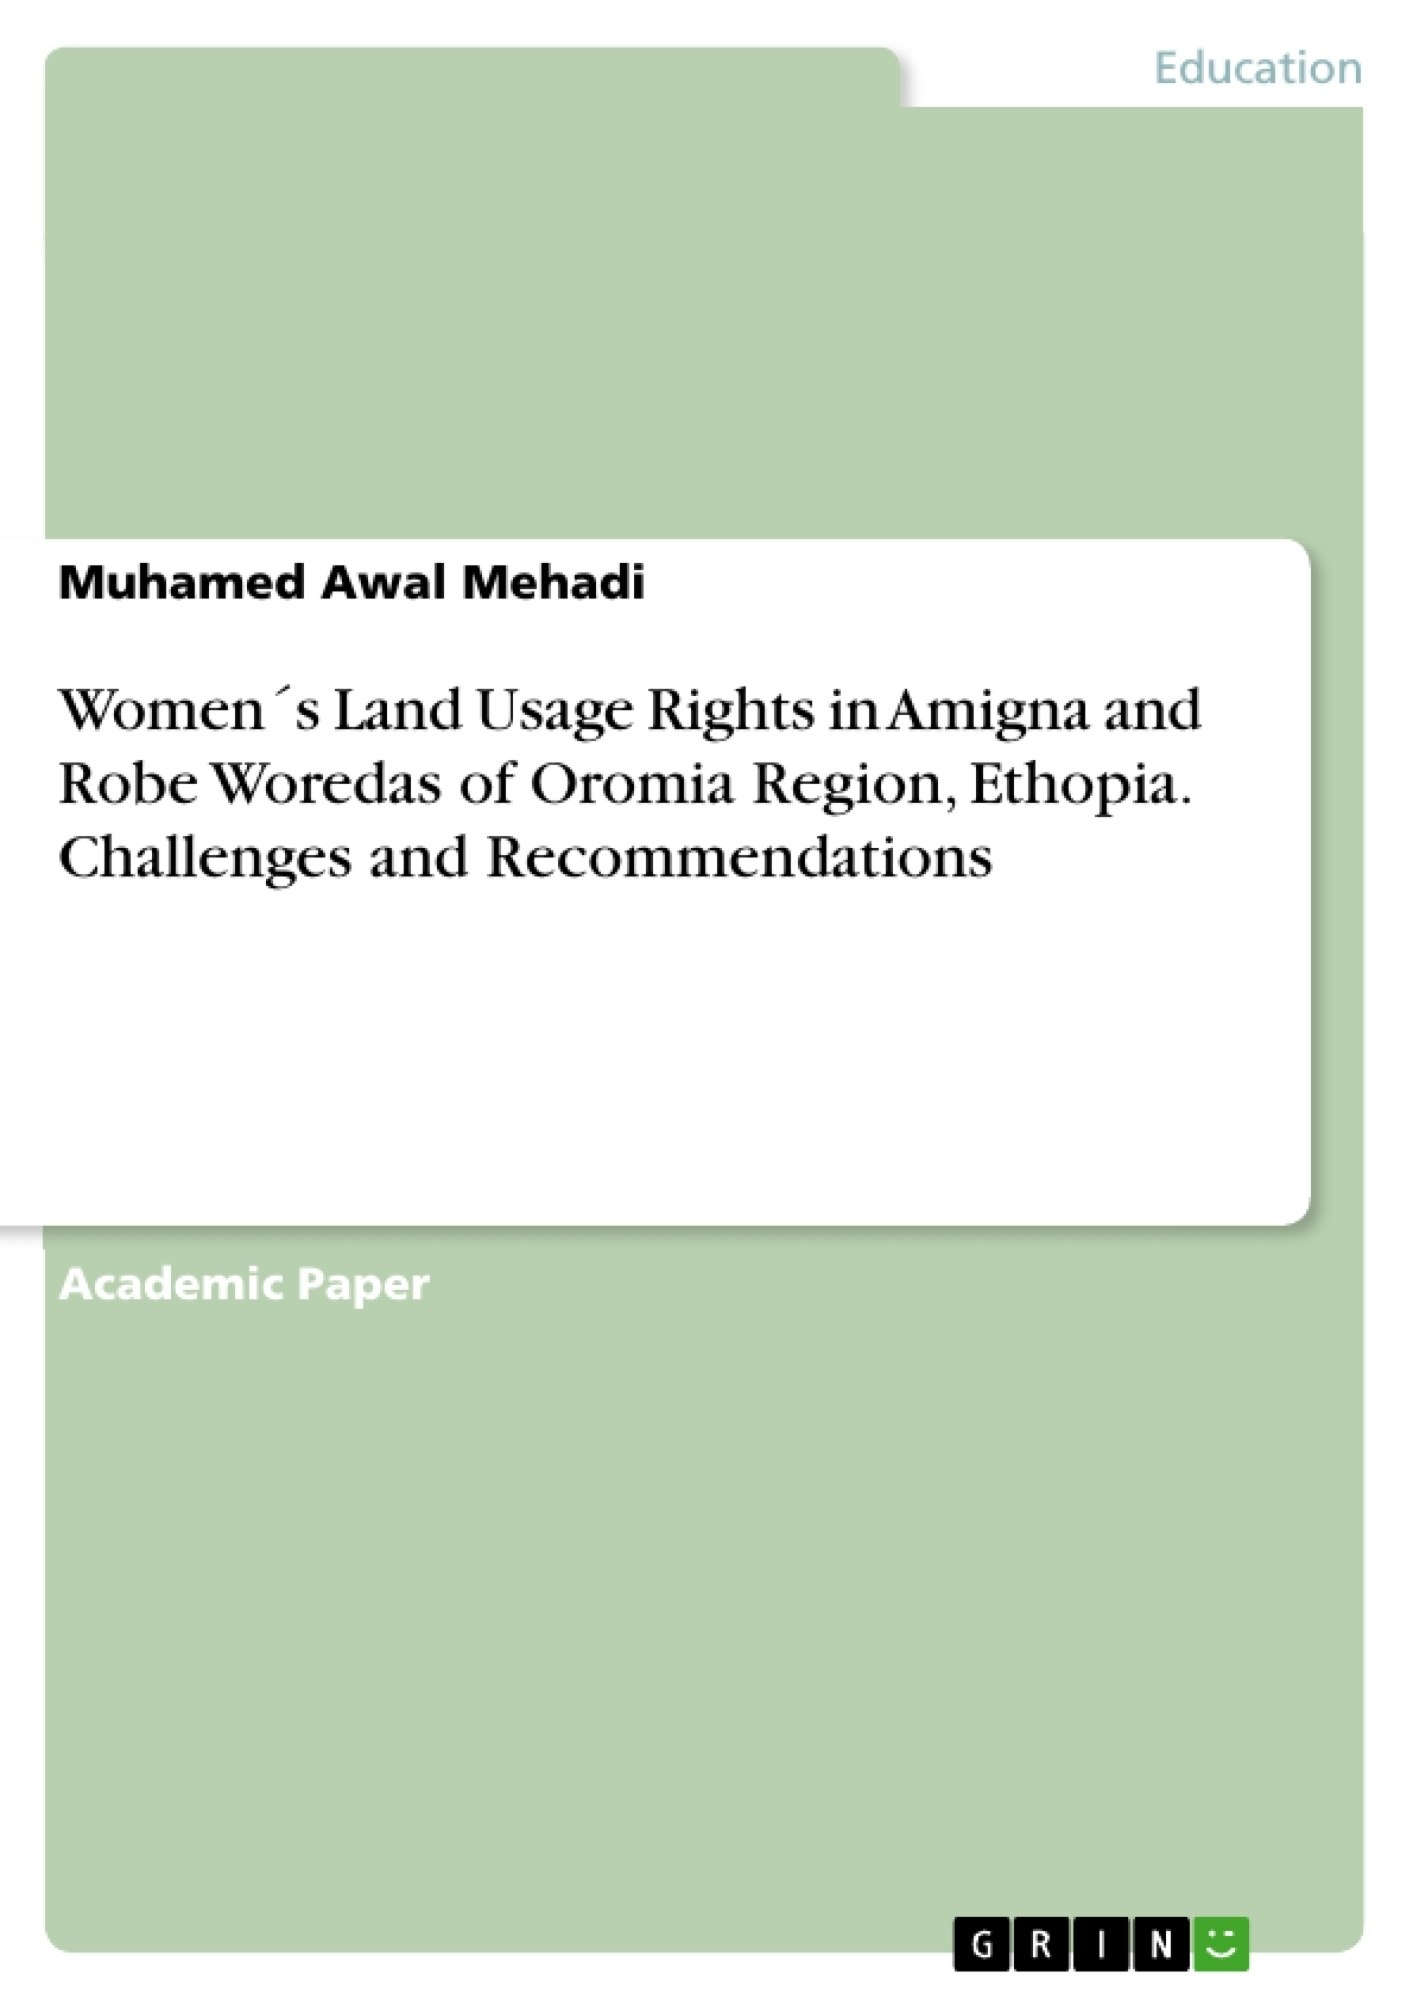 Title: Women´s Land Usage Rights in Amigna and Robe Woredas of Oromia Region, Ethopia. Challenges and Recommendations